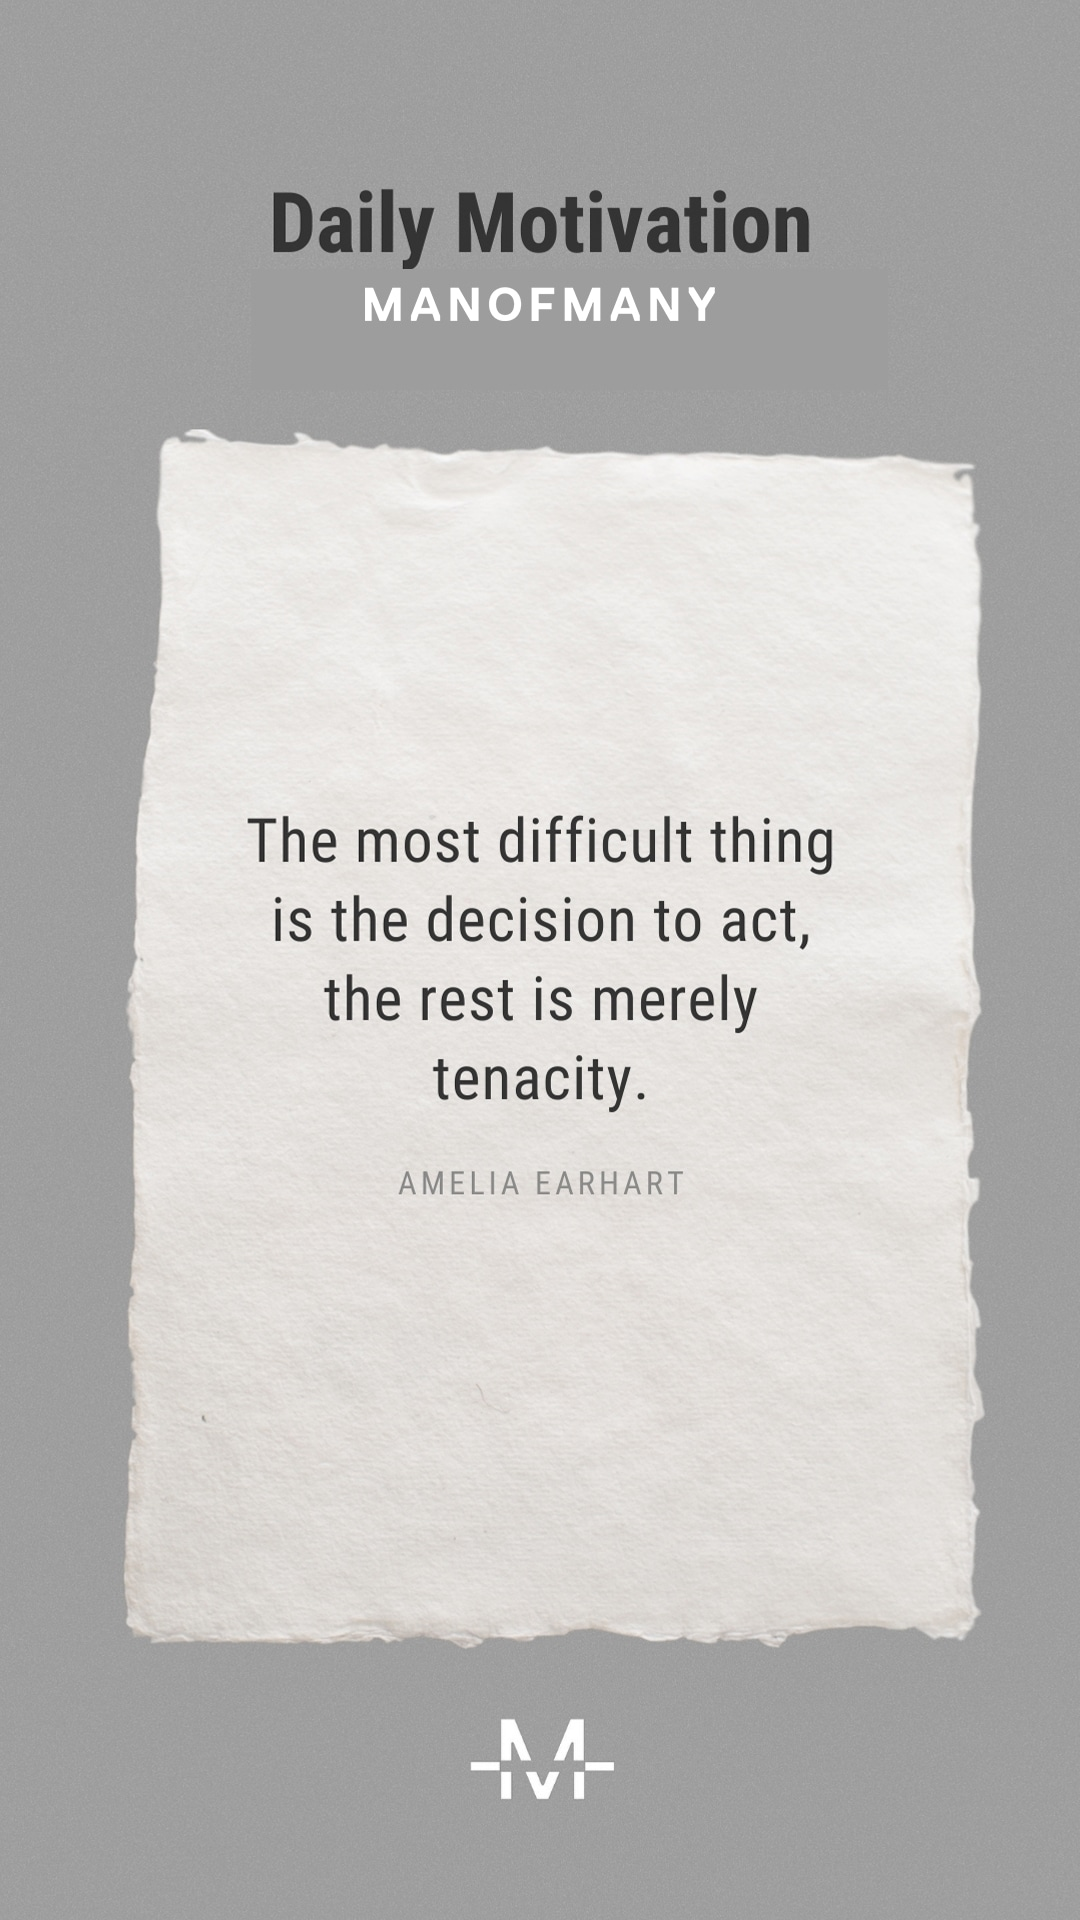 The most difficult thing is the decision to act, the rest is merely tenacity. –Amelia Earhart quote